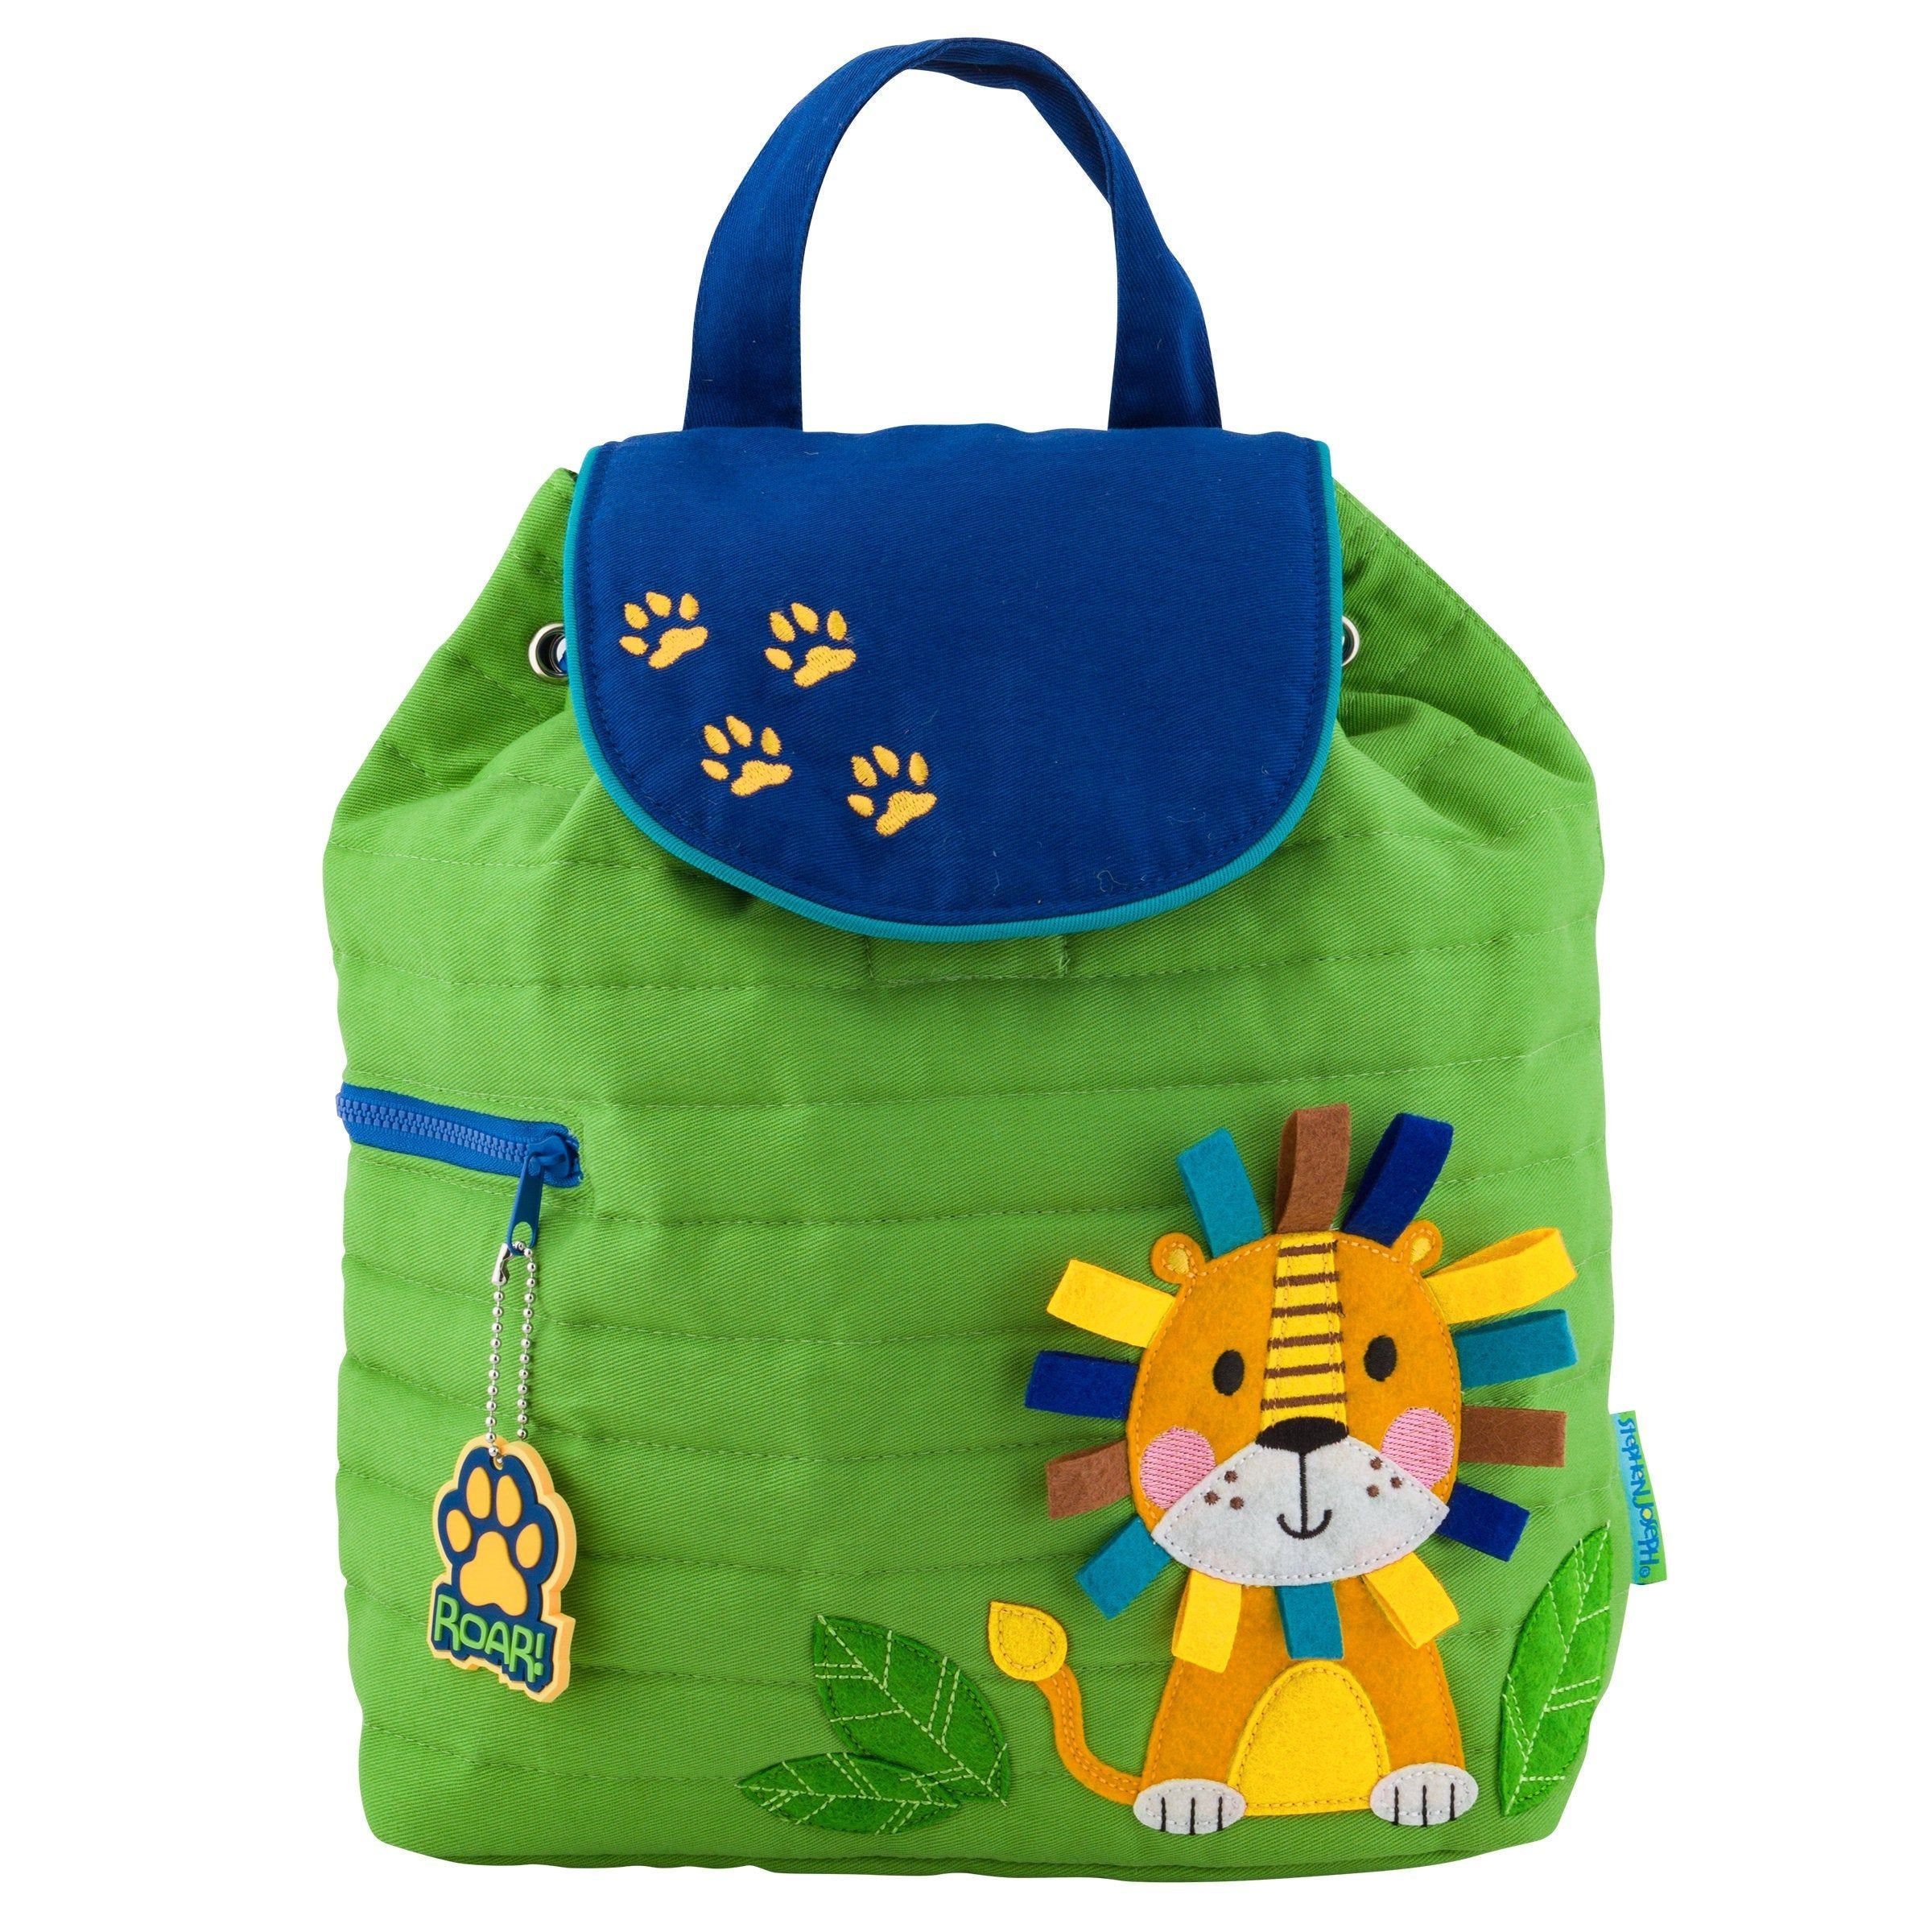 54a73ad2f446 Personalize Quilted Boy Tiger Backpack, Stephen Joseph Boy Tiger ...